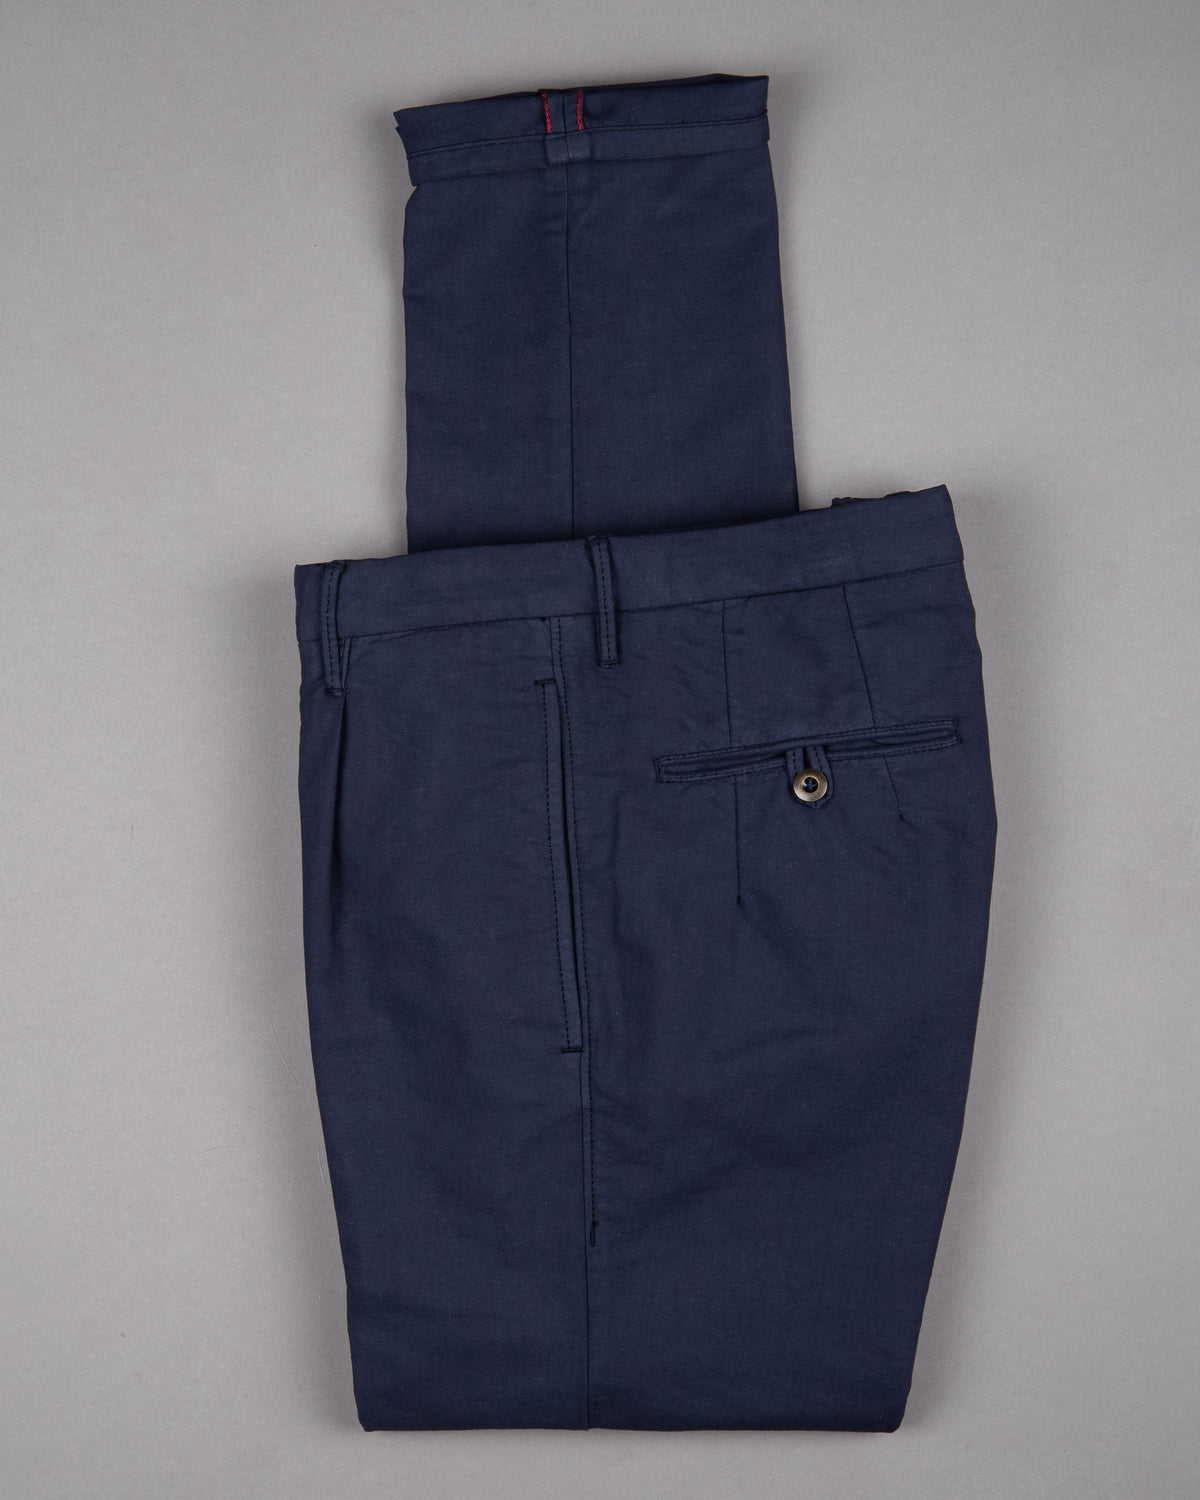 Incotex slacks Chino Trouser Pants Hose for men in dark blue navy 97% cotton 3% elastane